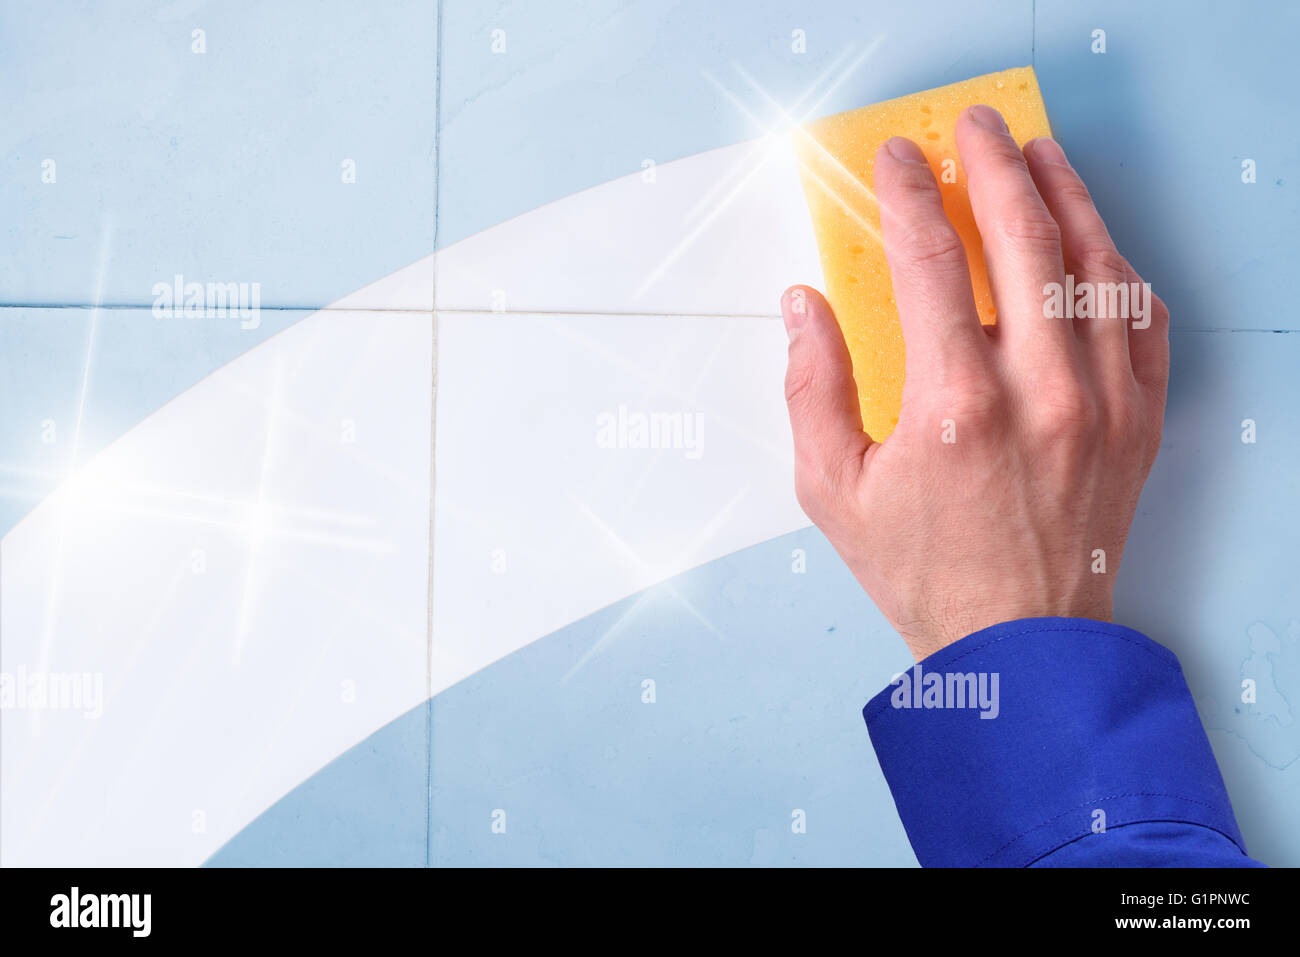 Concept of professional cleaning employee with blue tiles background and clean trace - Stock Image